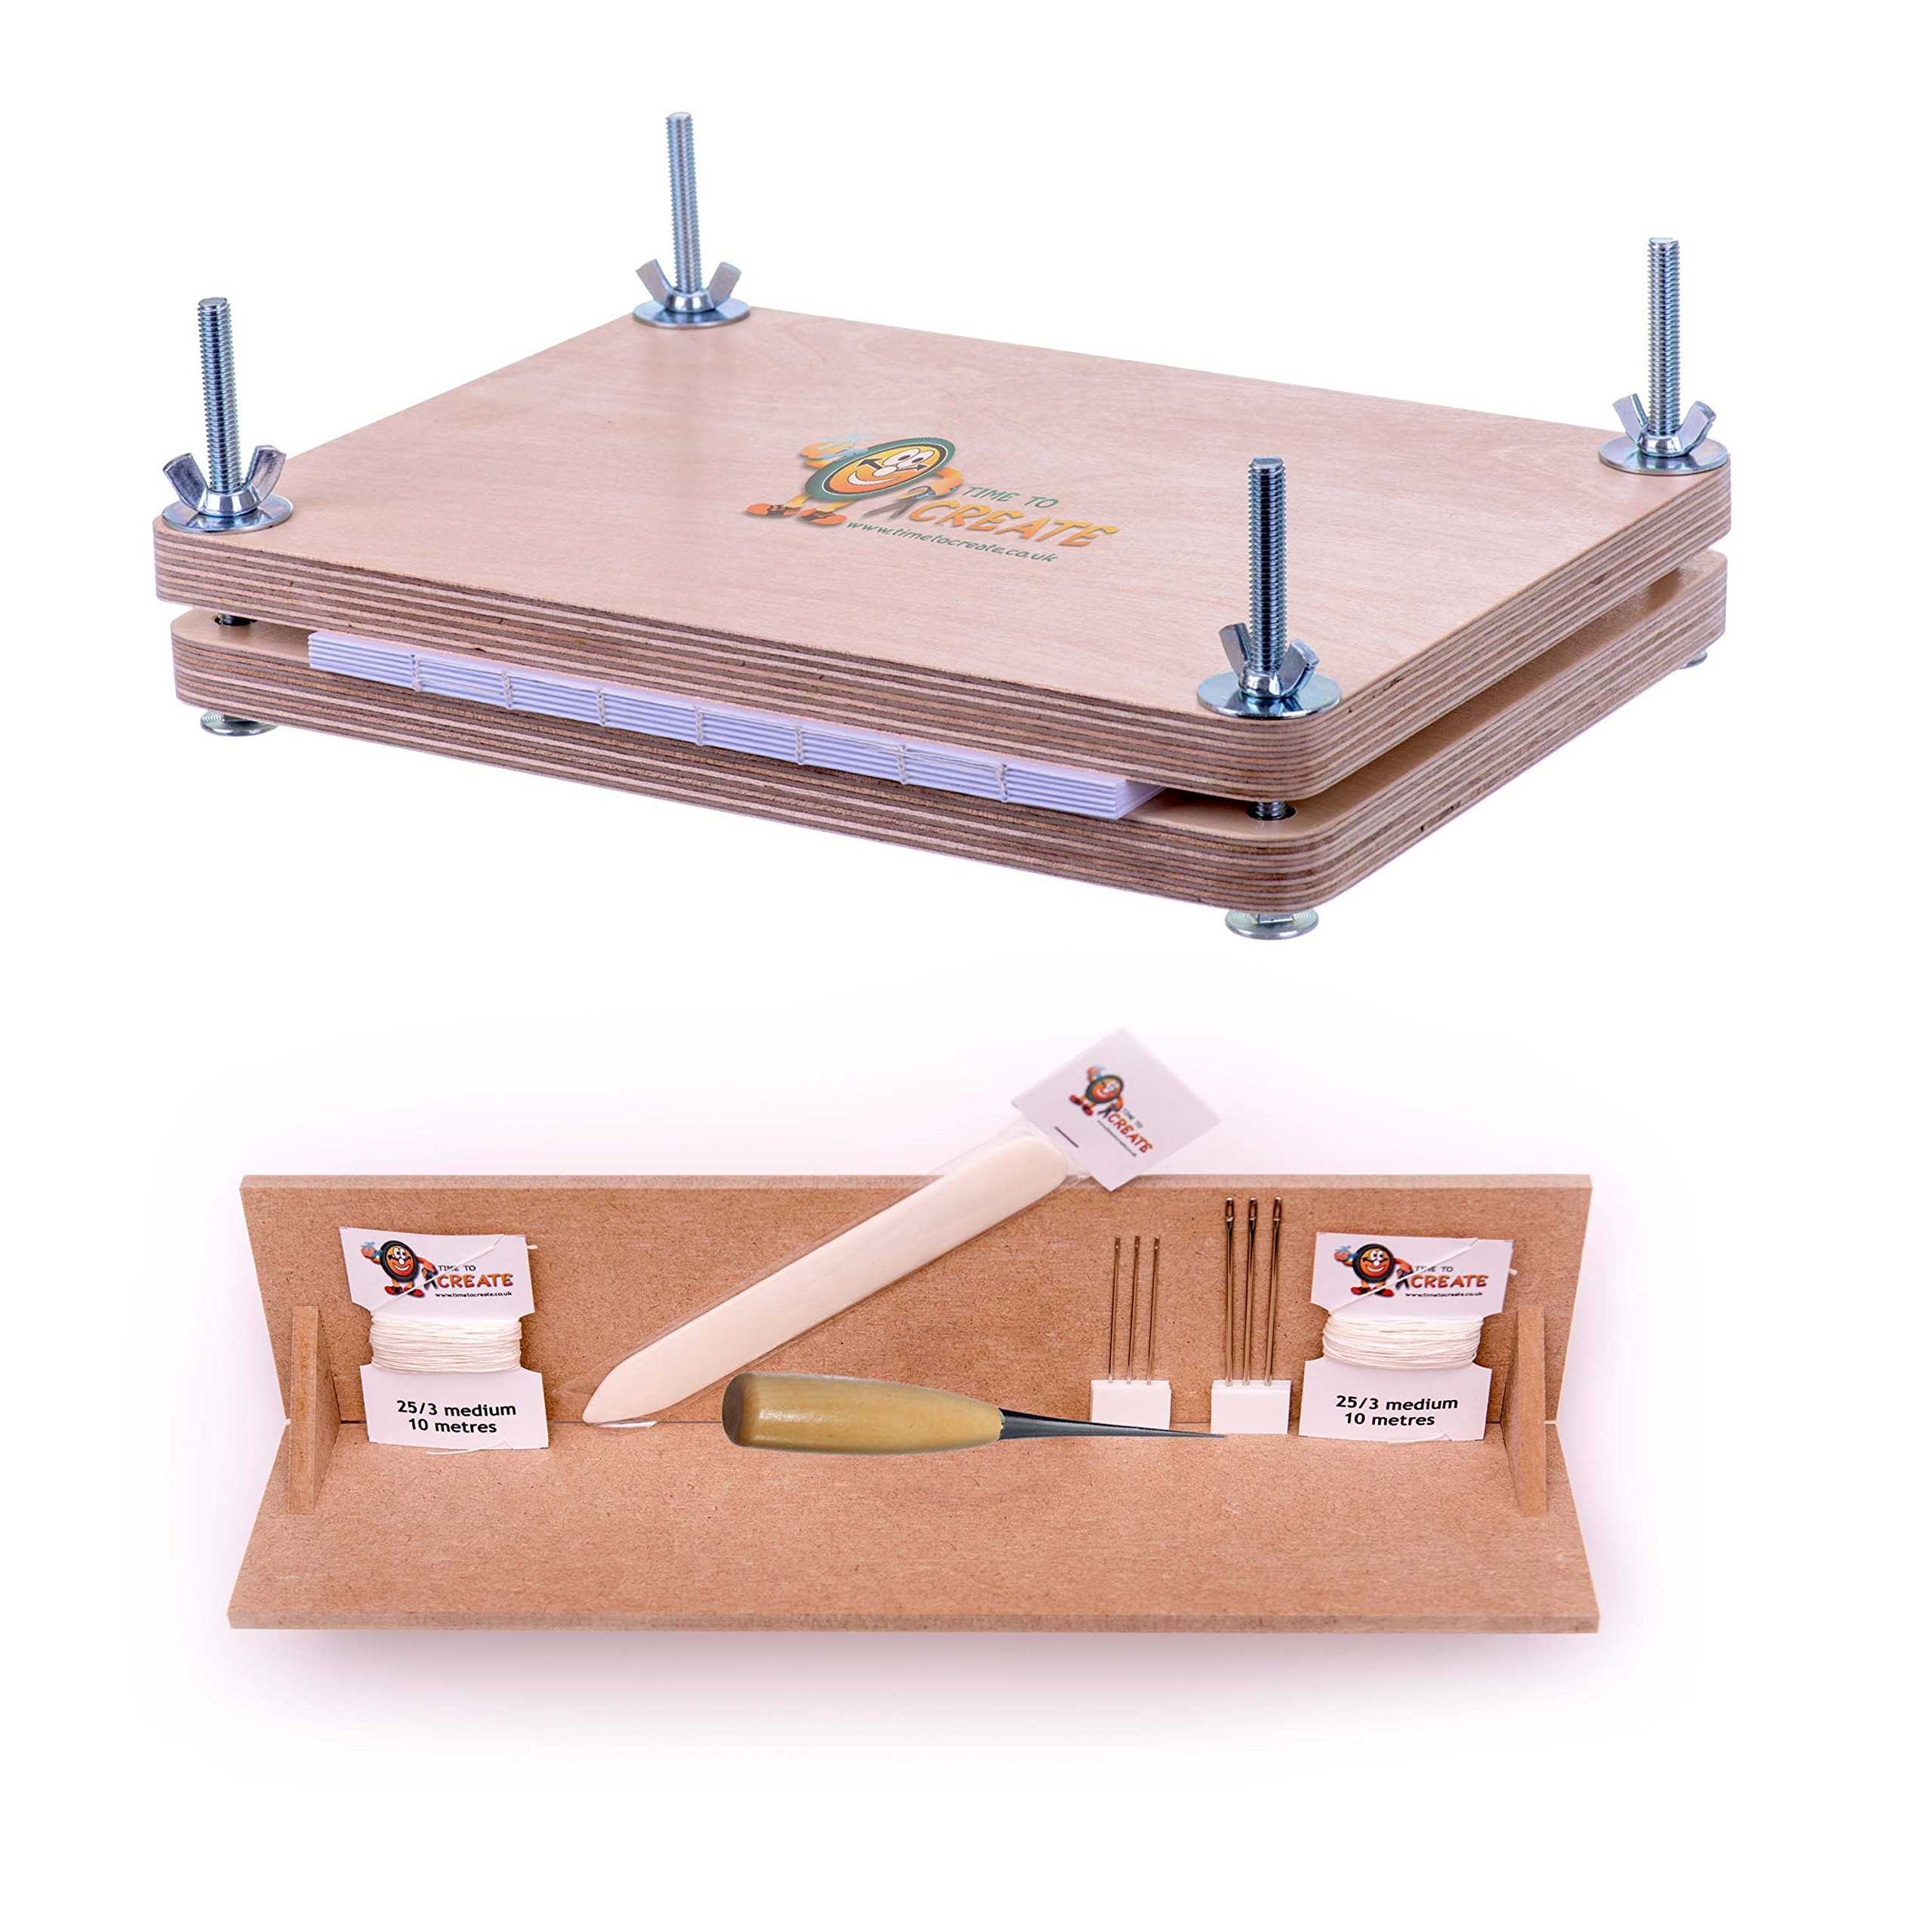 Bookbinding Super Deluxe Starter Kit with Book Press and Punching Cradle - Essential Tools for Book Binding - Bone Folder, Awl, Needles, Waxed Linen Thread, Bookbinding Press and Punching Cradle by Time to Create